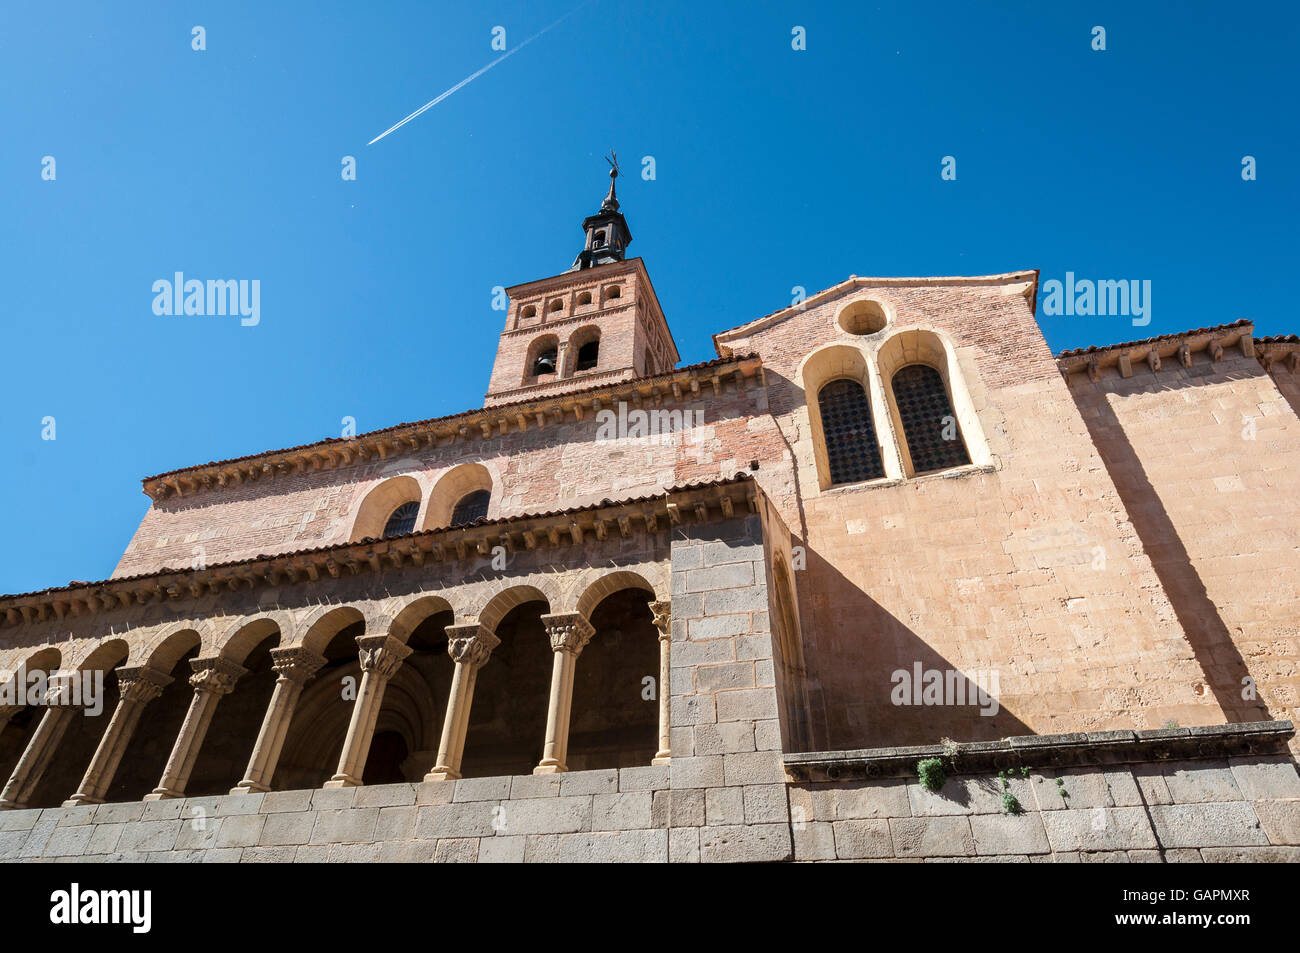 Views of the Church of San Martin, Segovia, Spain. It was built in the 12th century, Mozarab in origin and Romanesque - Stock Image